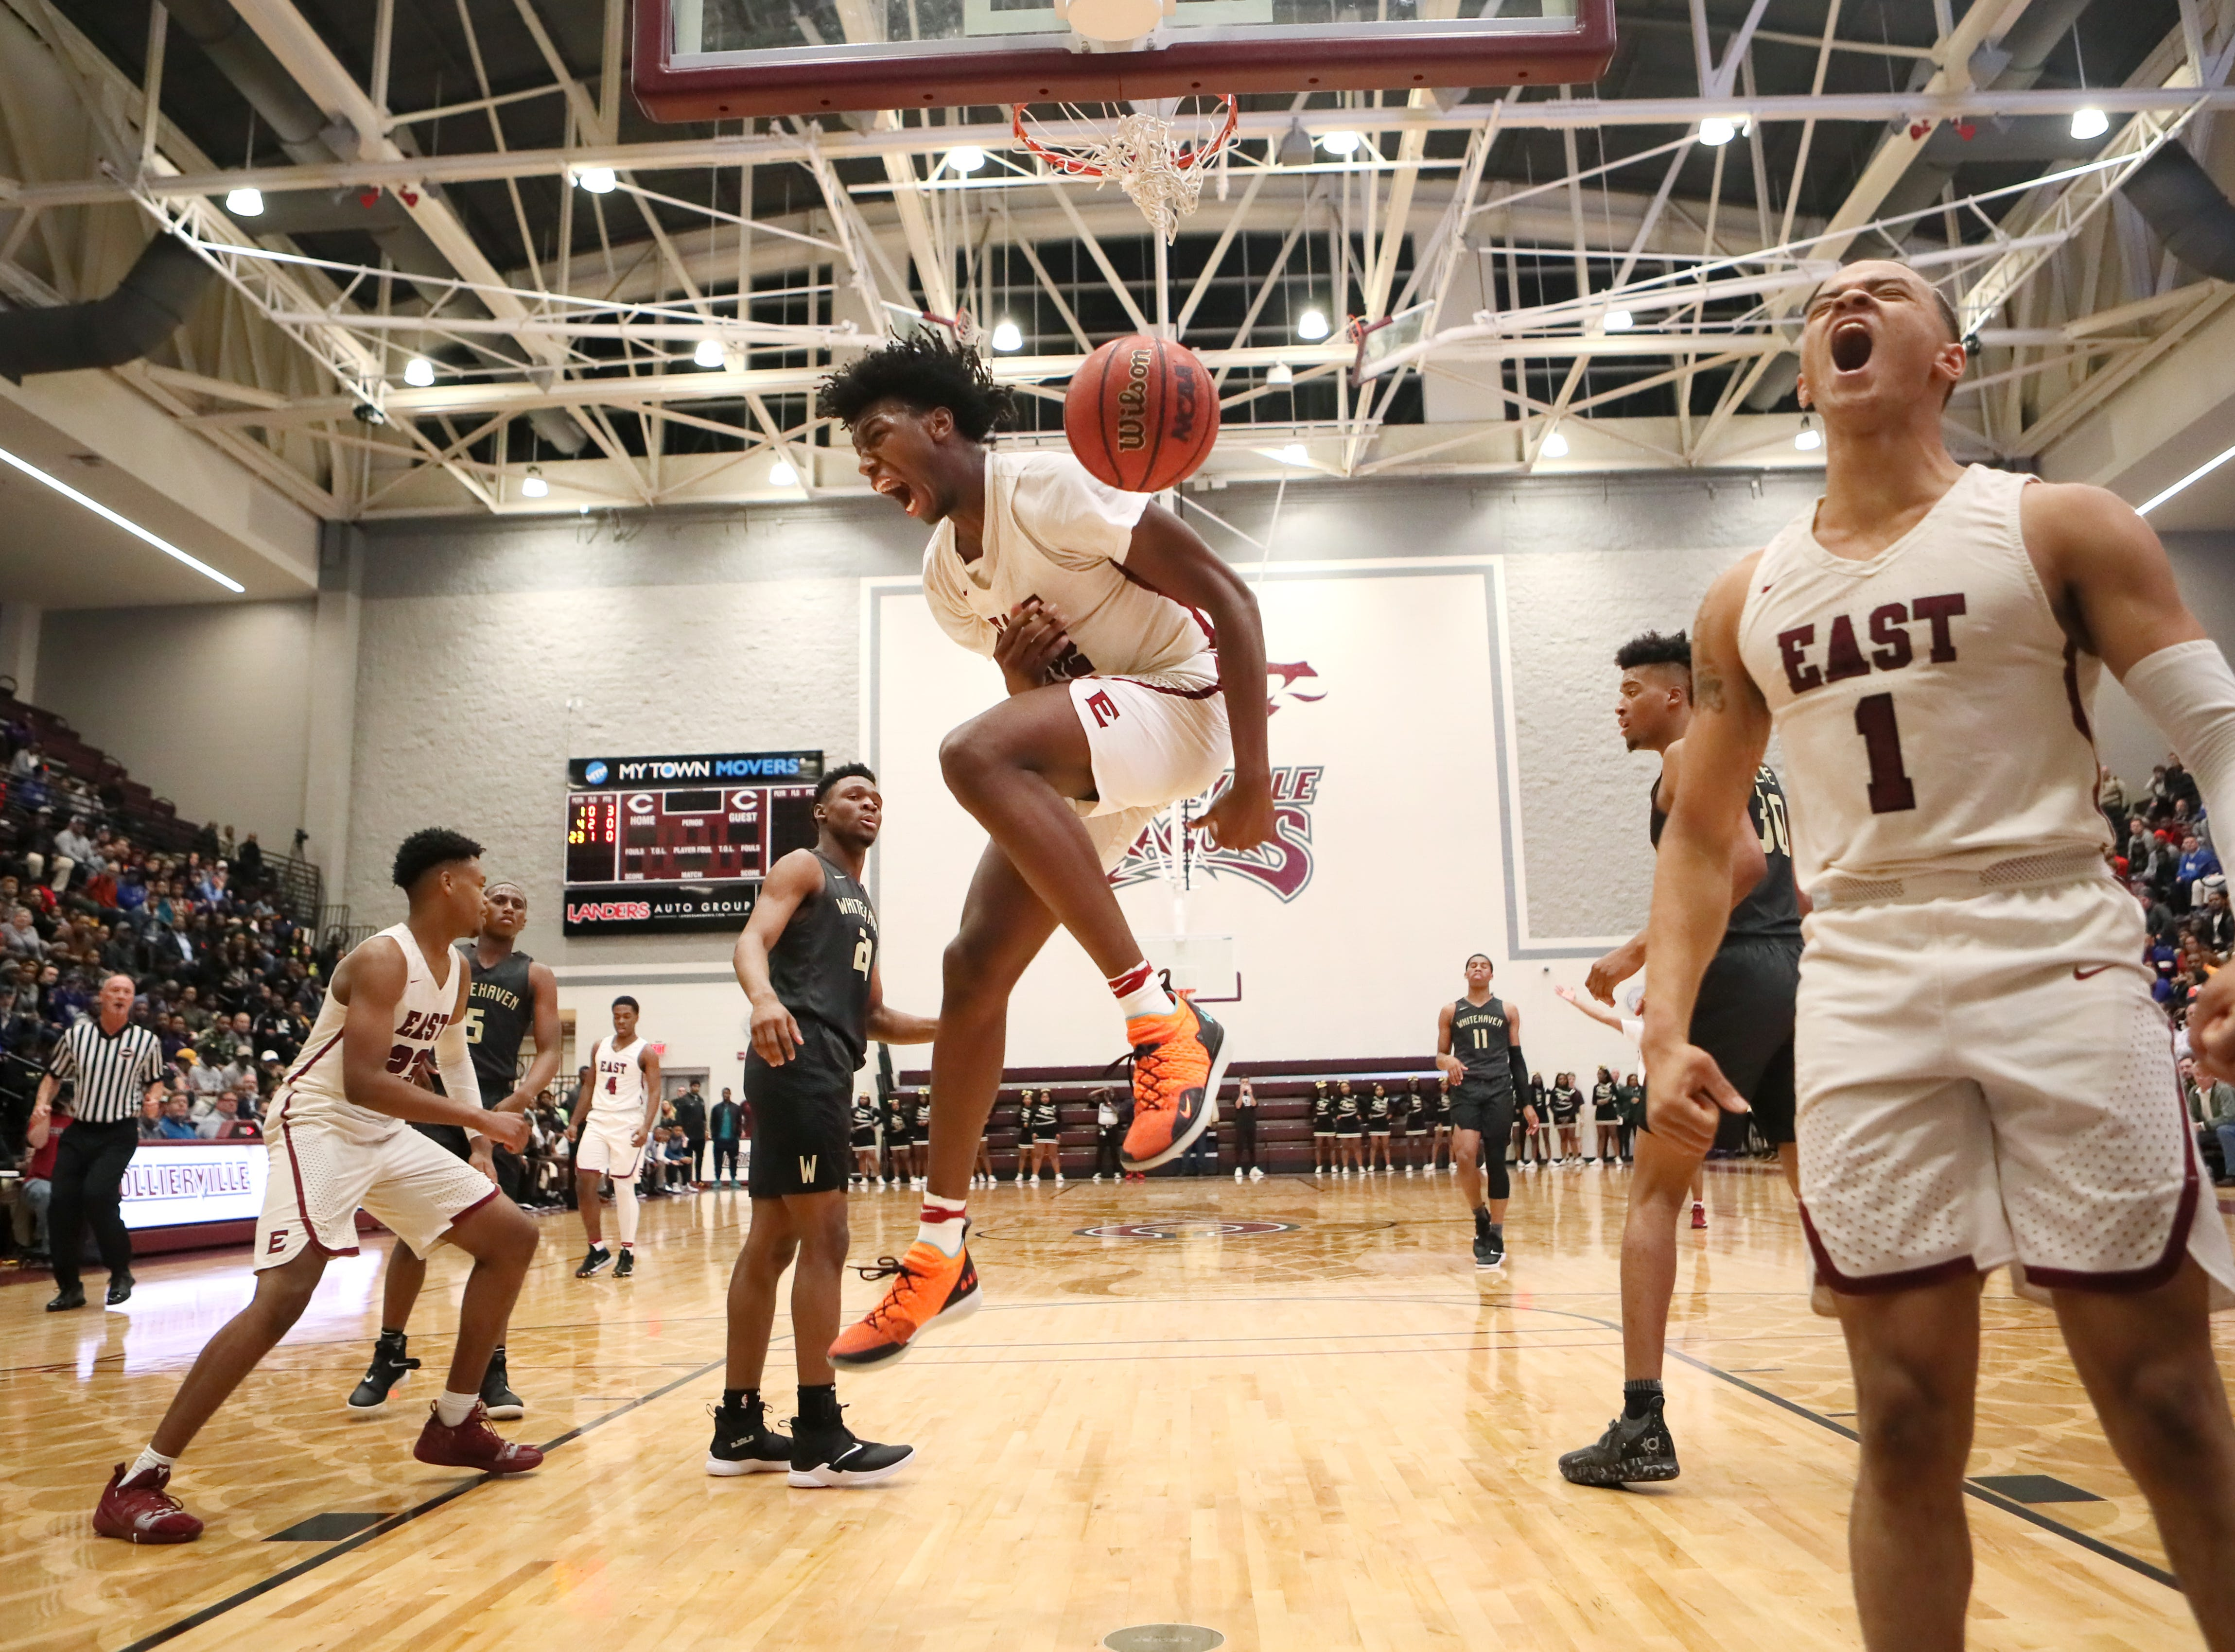 Memphis East's James Wiseman celebrates his dunk while teammate Antonio Thomas joins in to celebrate his assist on the play against Whitehaven during their Region 8AAA Championship game at Collierville High School on Thursday, Feb. 28, 2019.